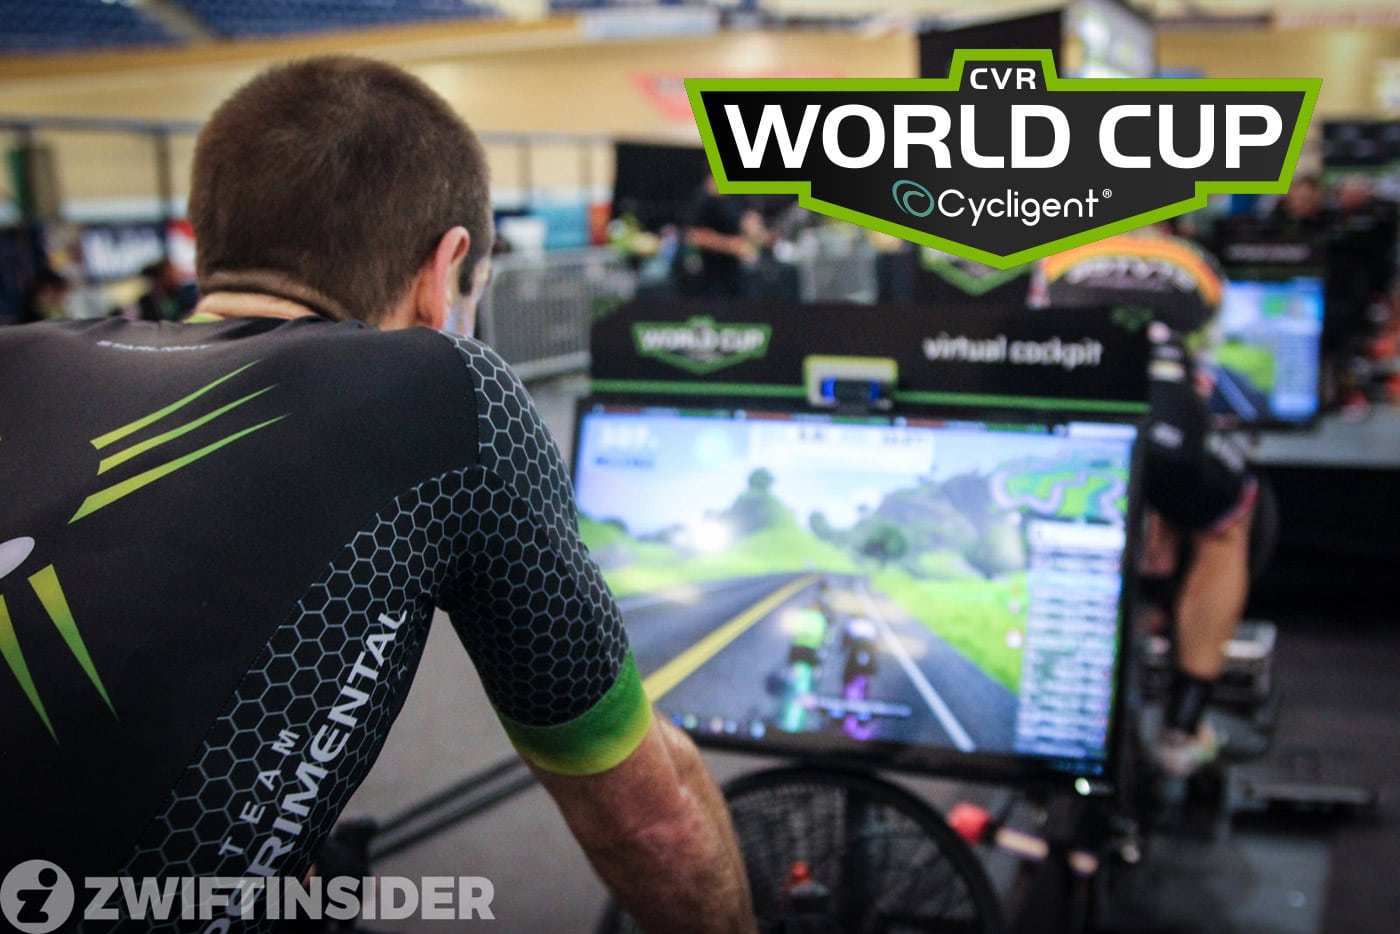 CVR World Cup in Vancouver, BC this Weekend